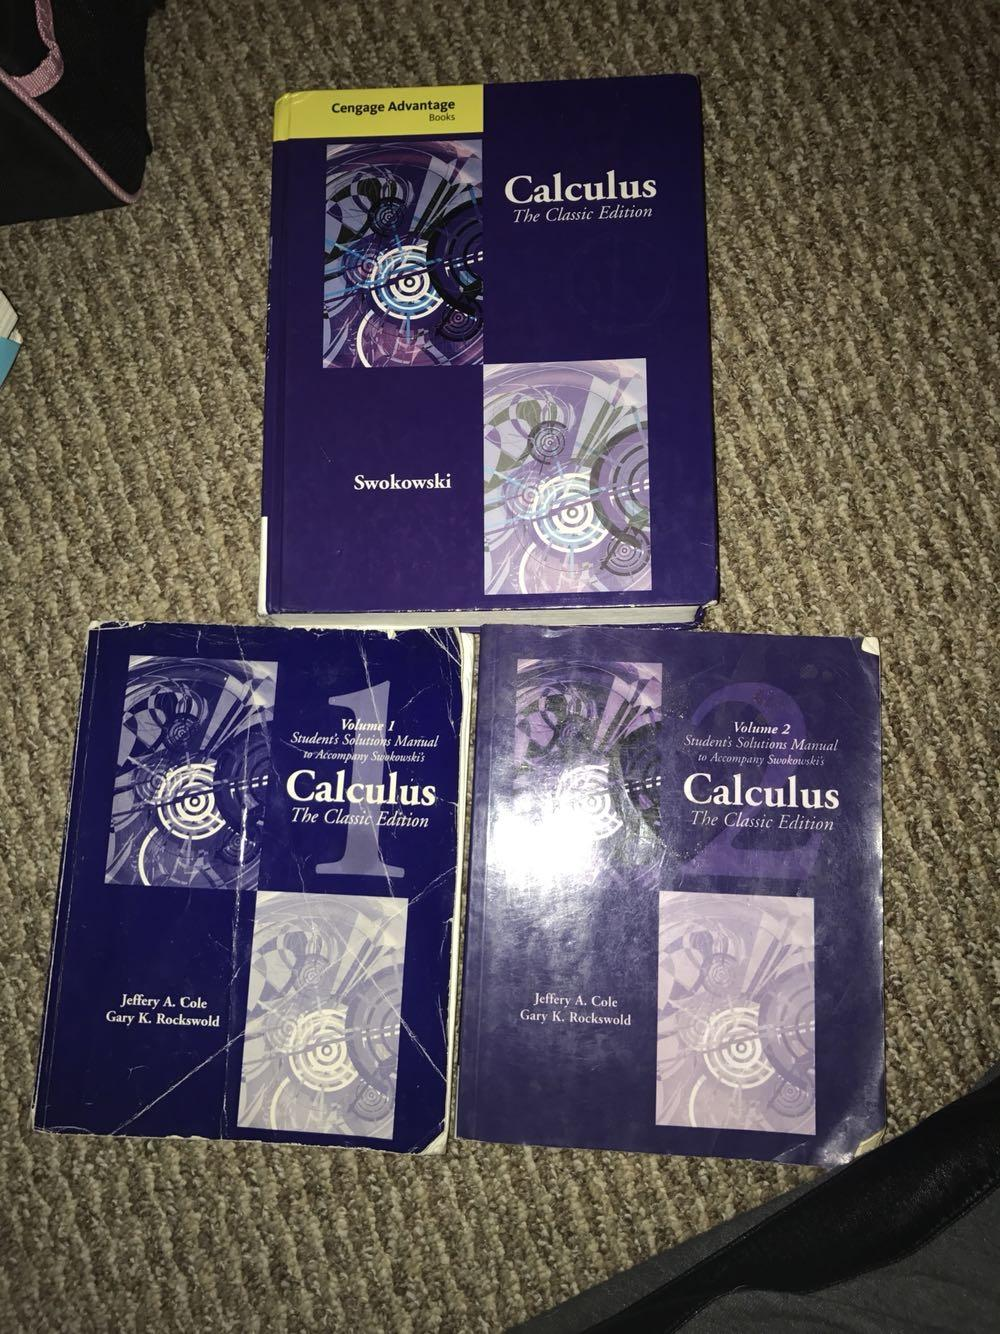 Best Calculus Classic Edition (swokowski) for sale in Champaign, Illinois  for 2018